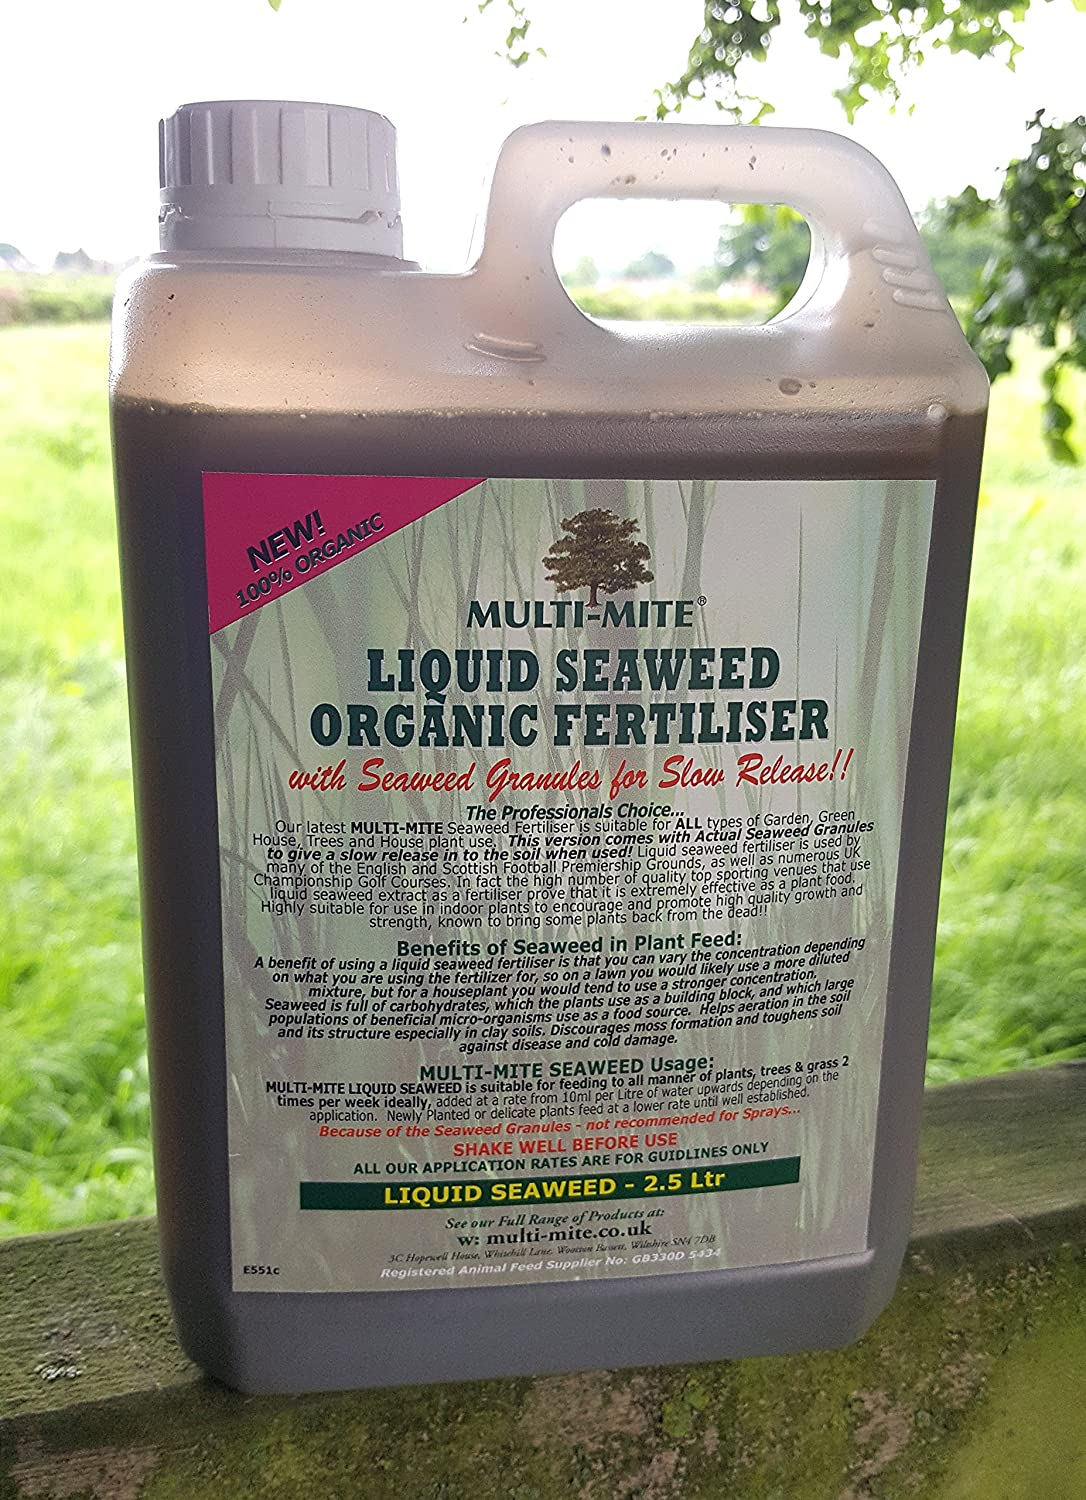 2.5 Ltr LIQUID SEAWEED with SEAWEED GRANULES FREE DELIVERY - for SLOW RELEASE! - Organic Concentrate - Multi-Mite®